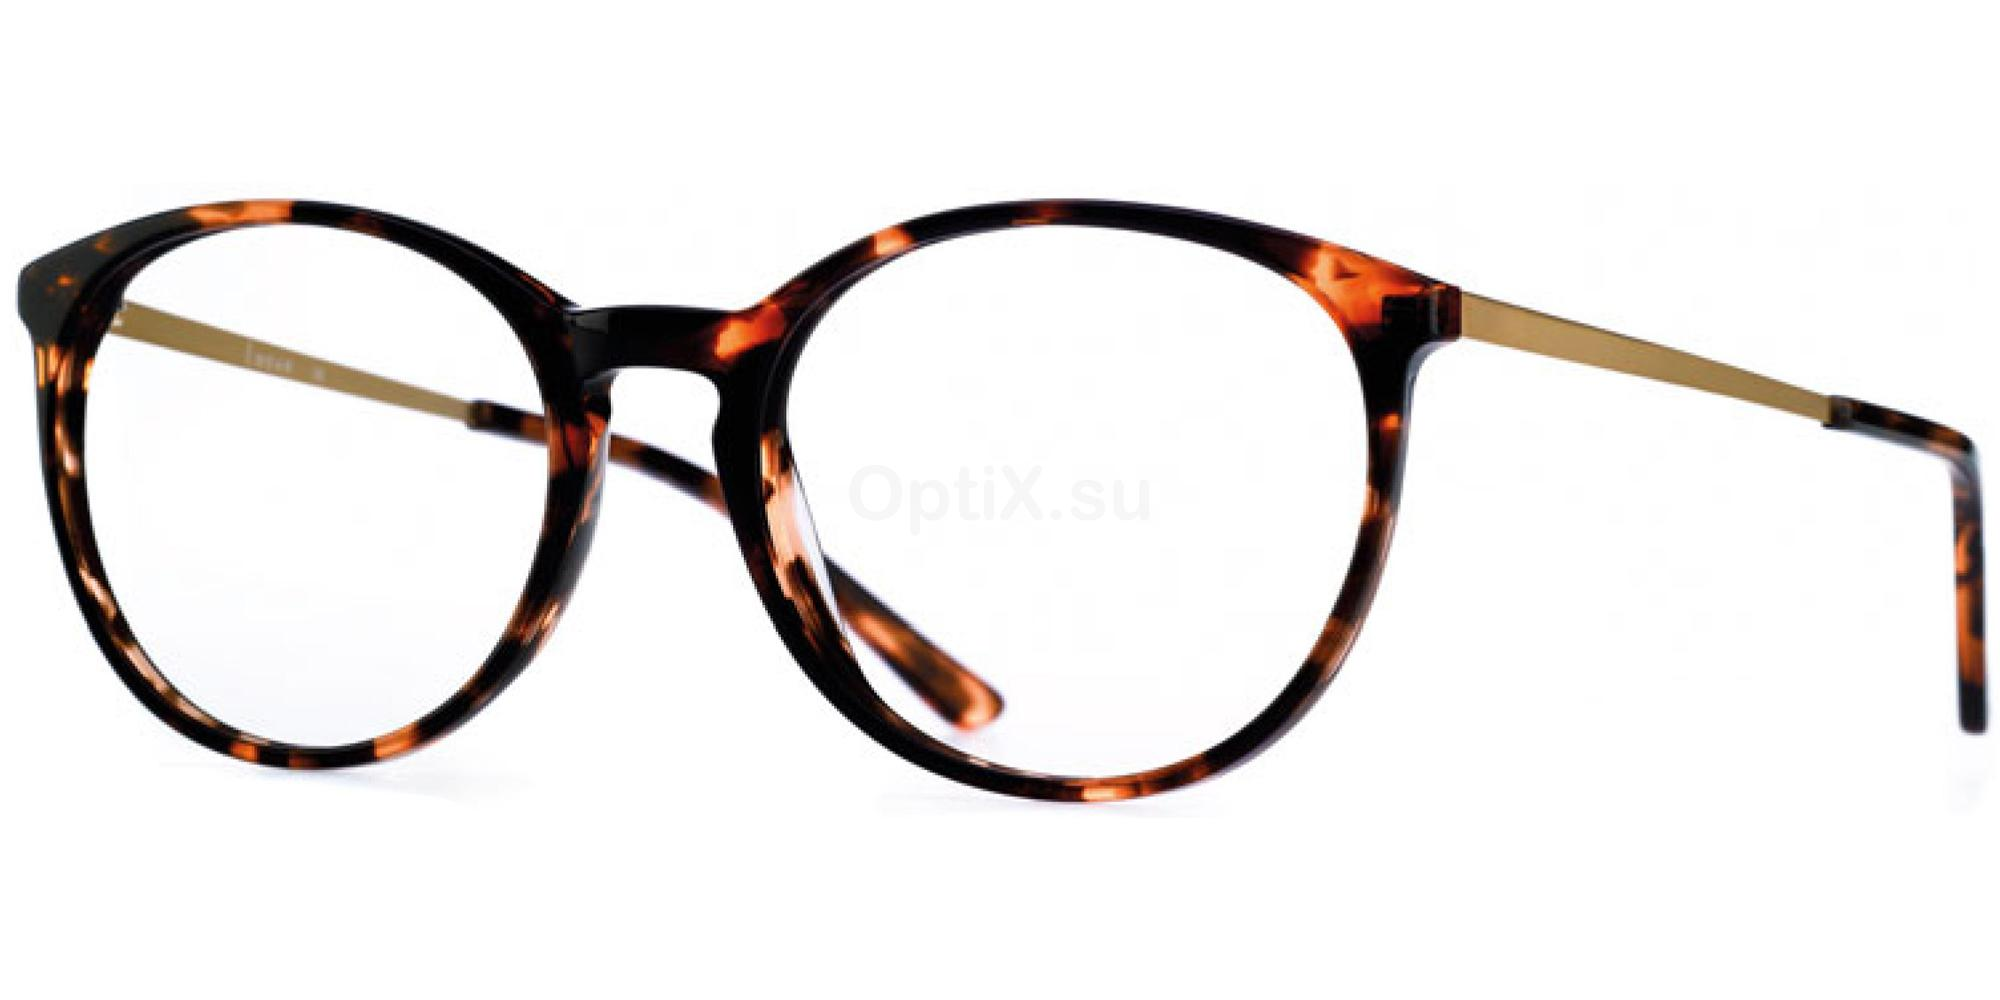 C1 i Wear 5083 Glasses, i Wear